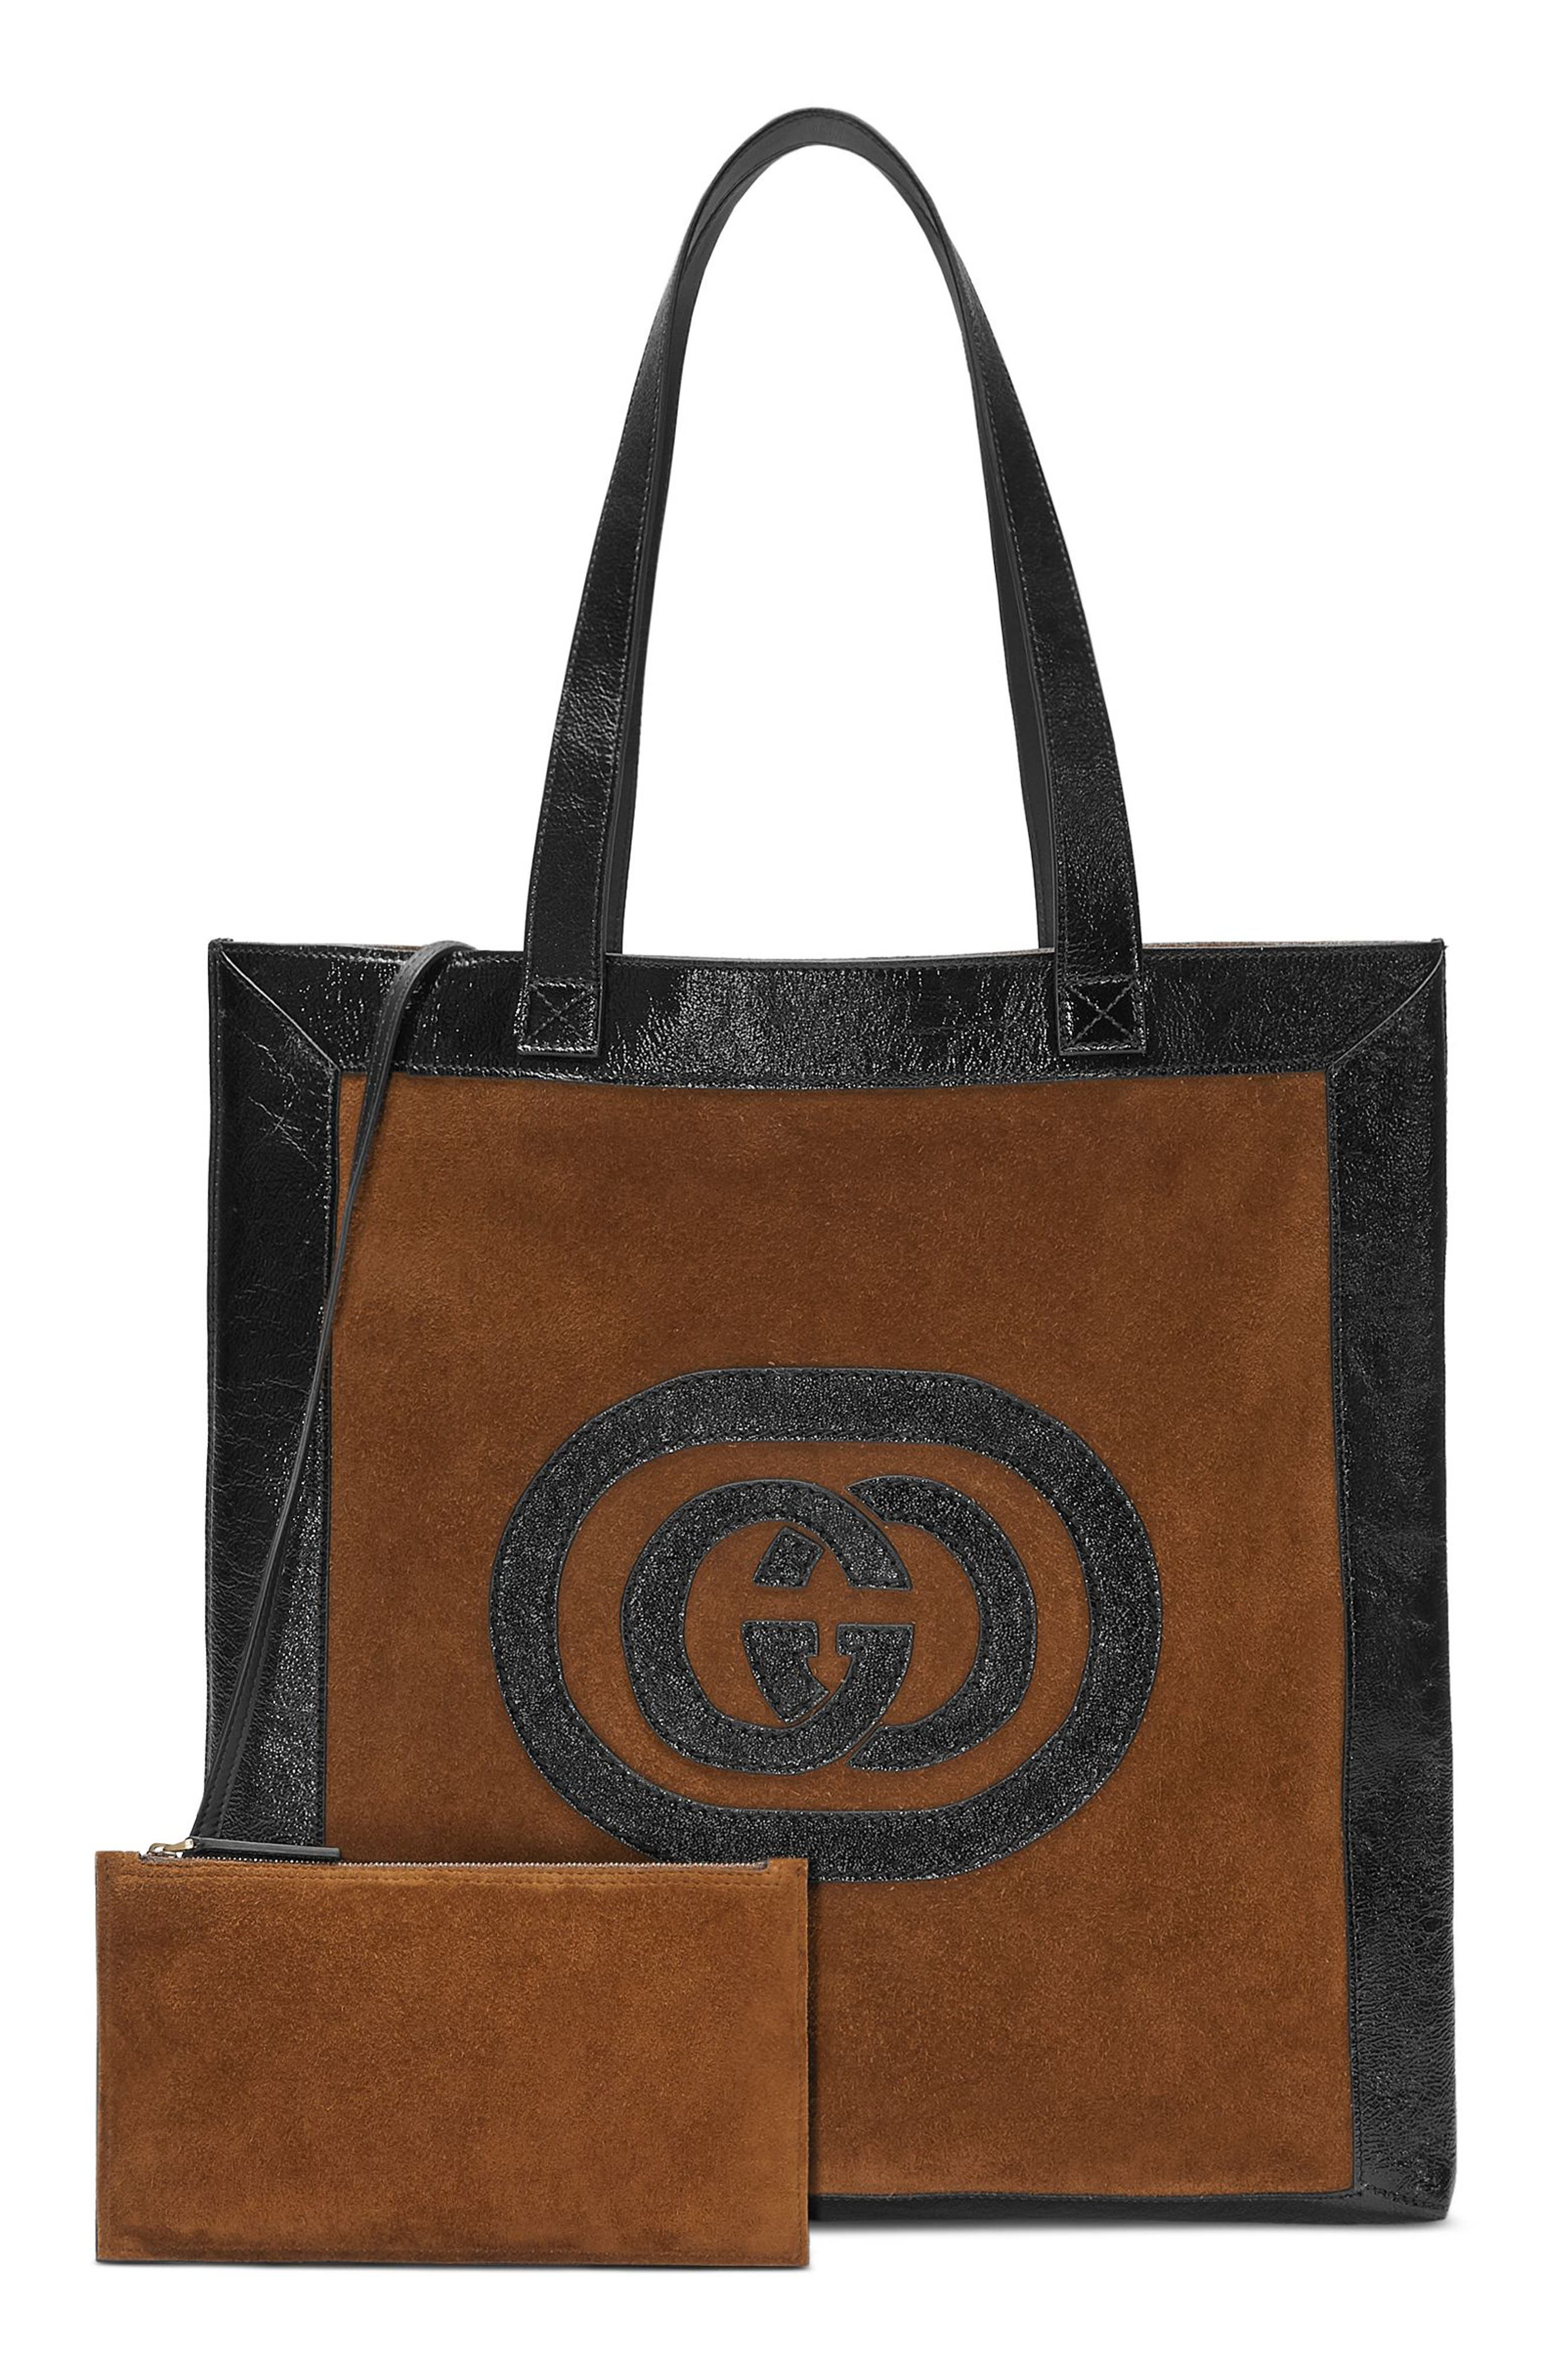 Large GG Calfskin Suede Tote with Zip Pouch,                         Main,                         color, Brown/ Black